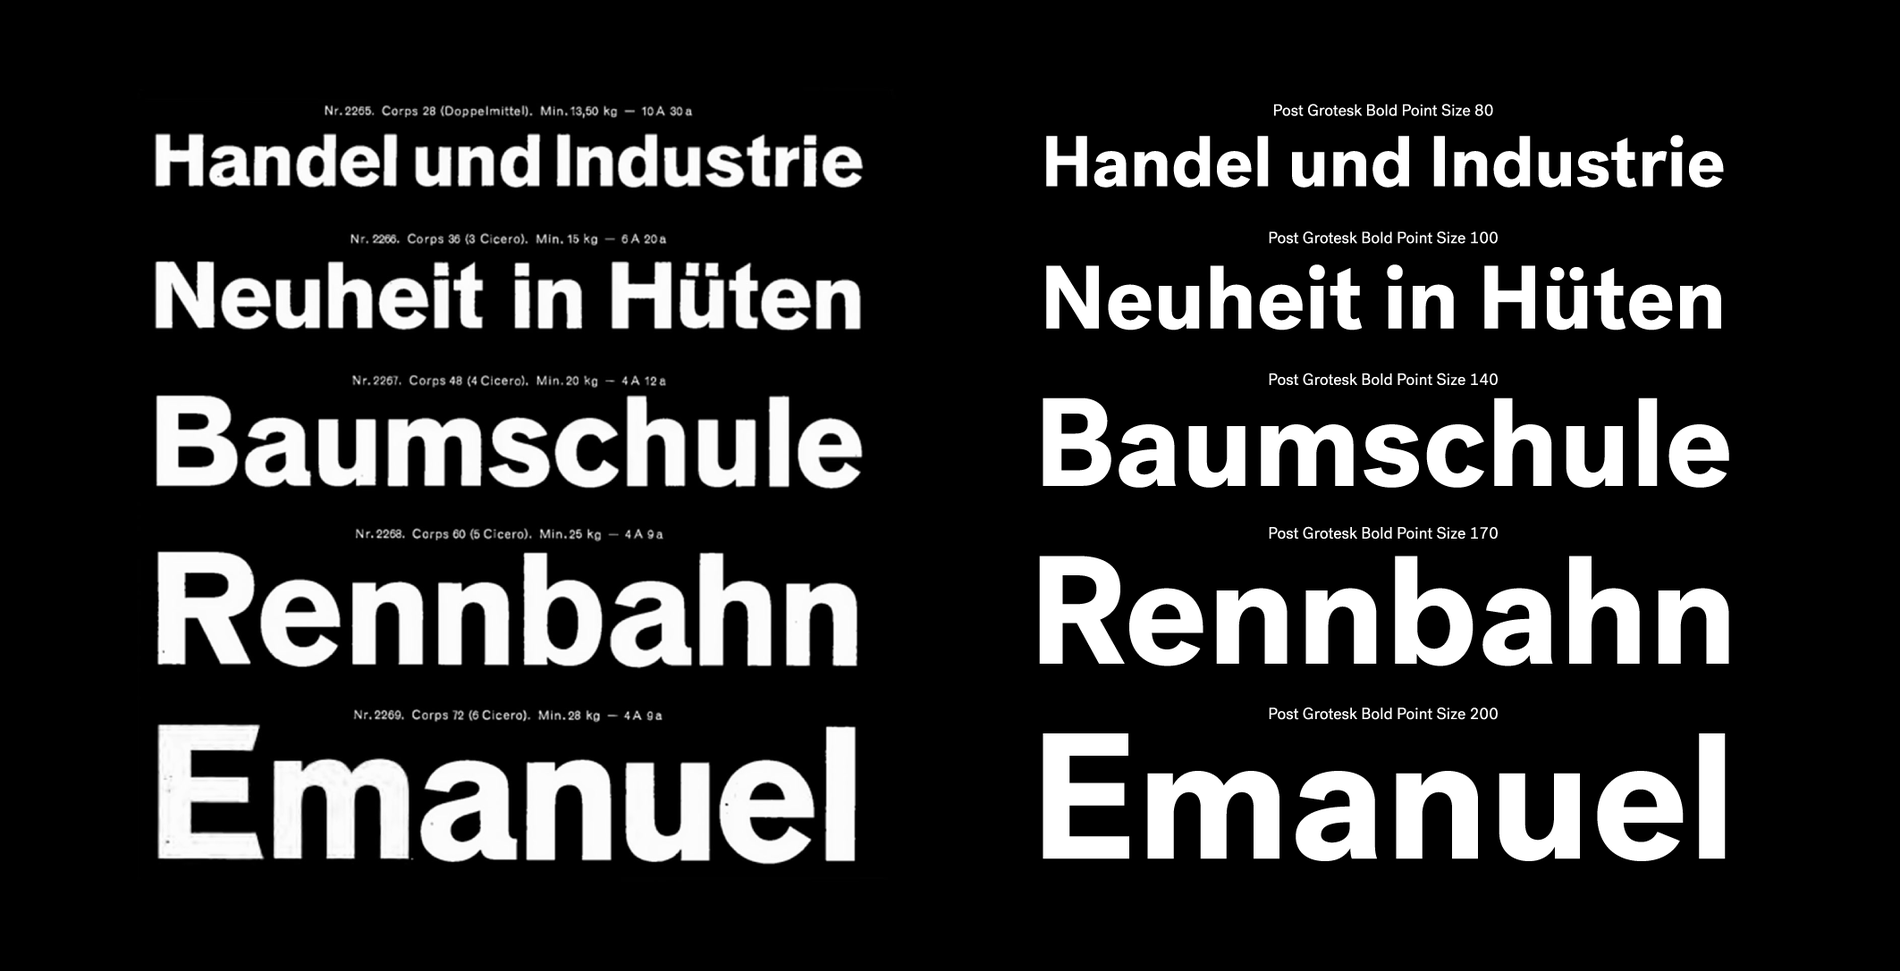 Village: Post Grotesk